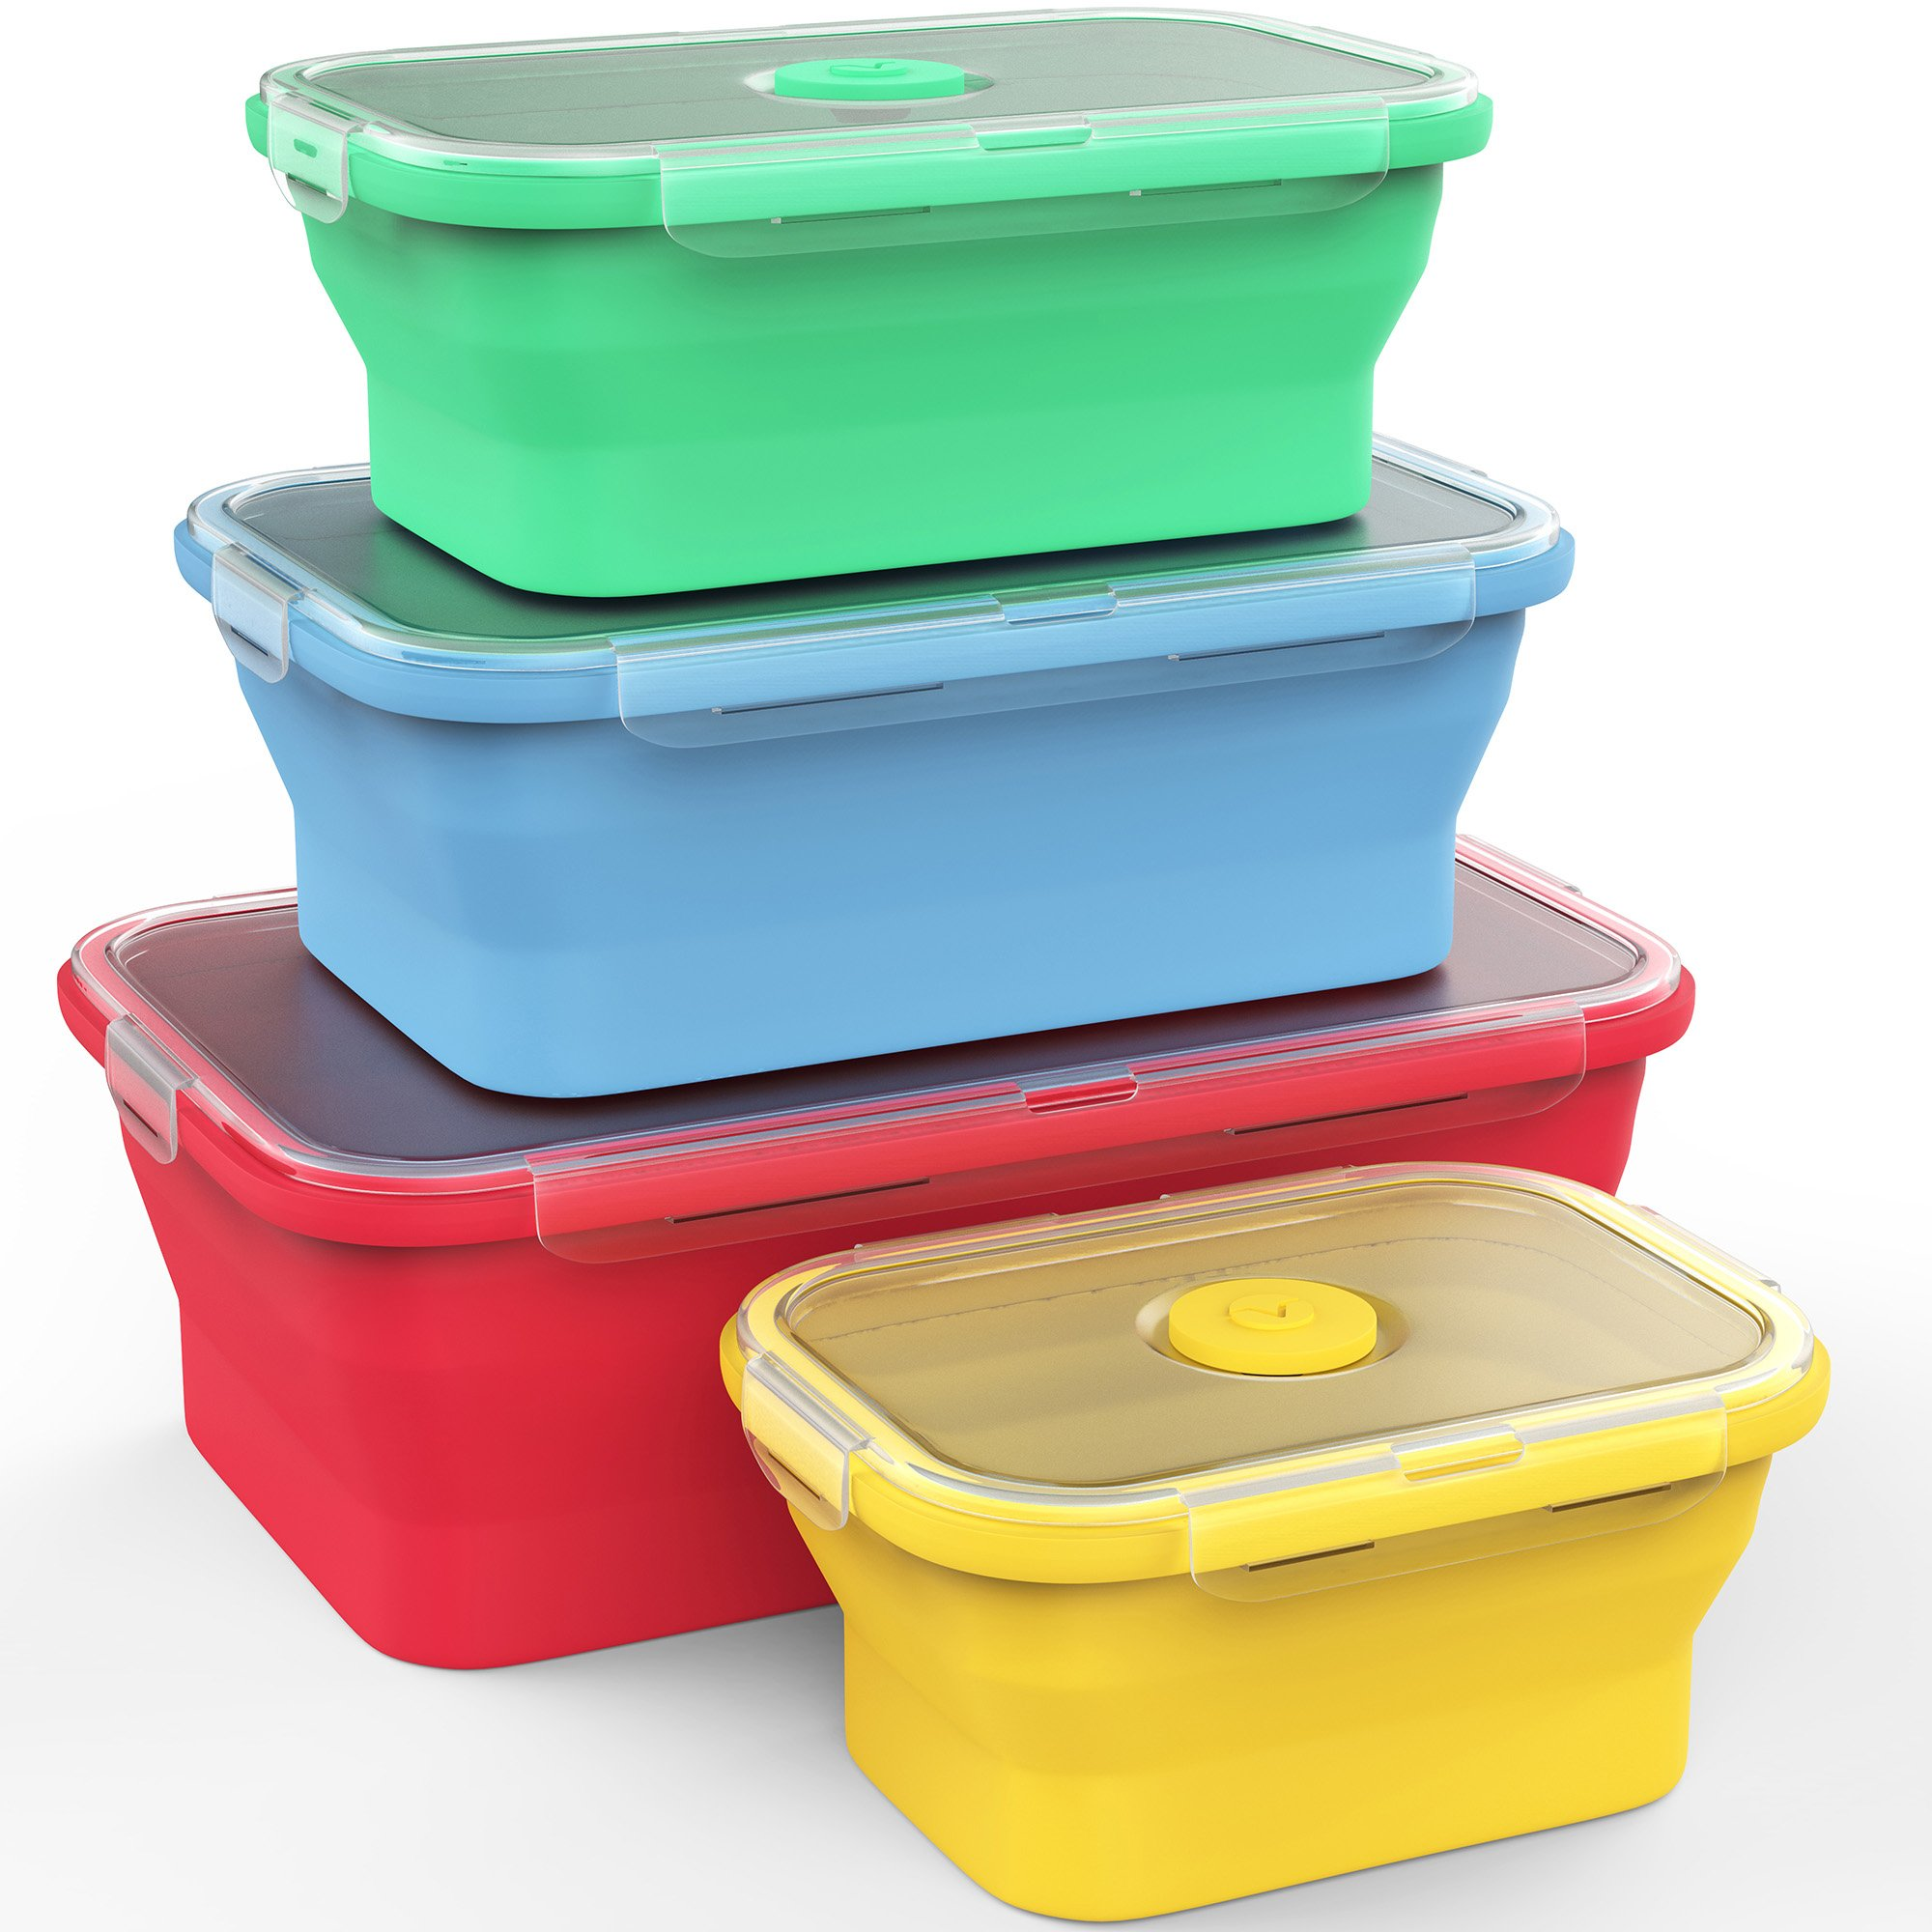 Vremi Silicone Food Storage Containers with BPA Free Airtight Plastic Lids - Set of 4 Small and Large Collapsible Meal Prep Container for Kitchen or Kids Lunch Bento Boxes - Microwave and Freezer Safe by Vremi